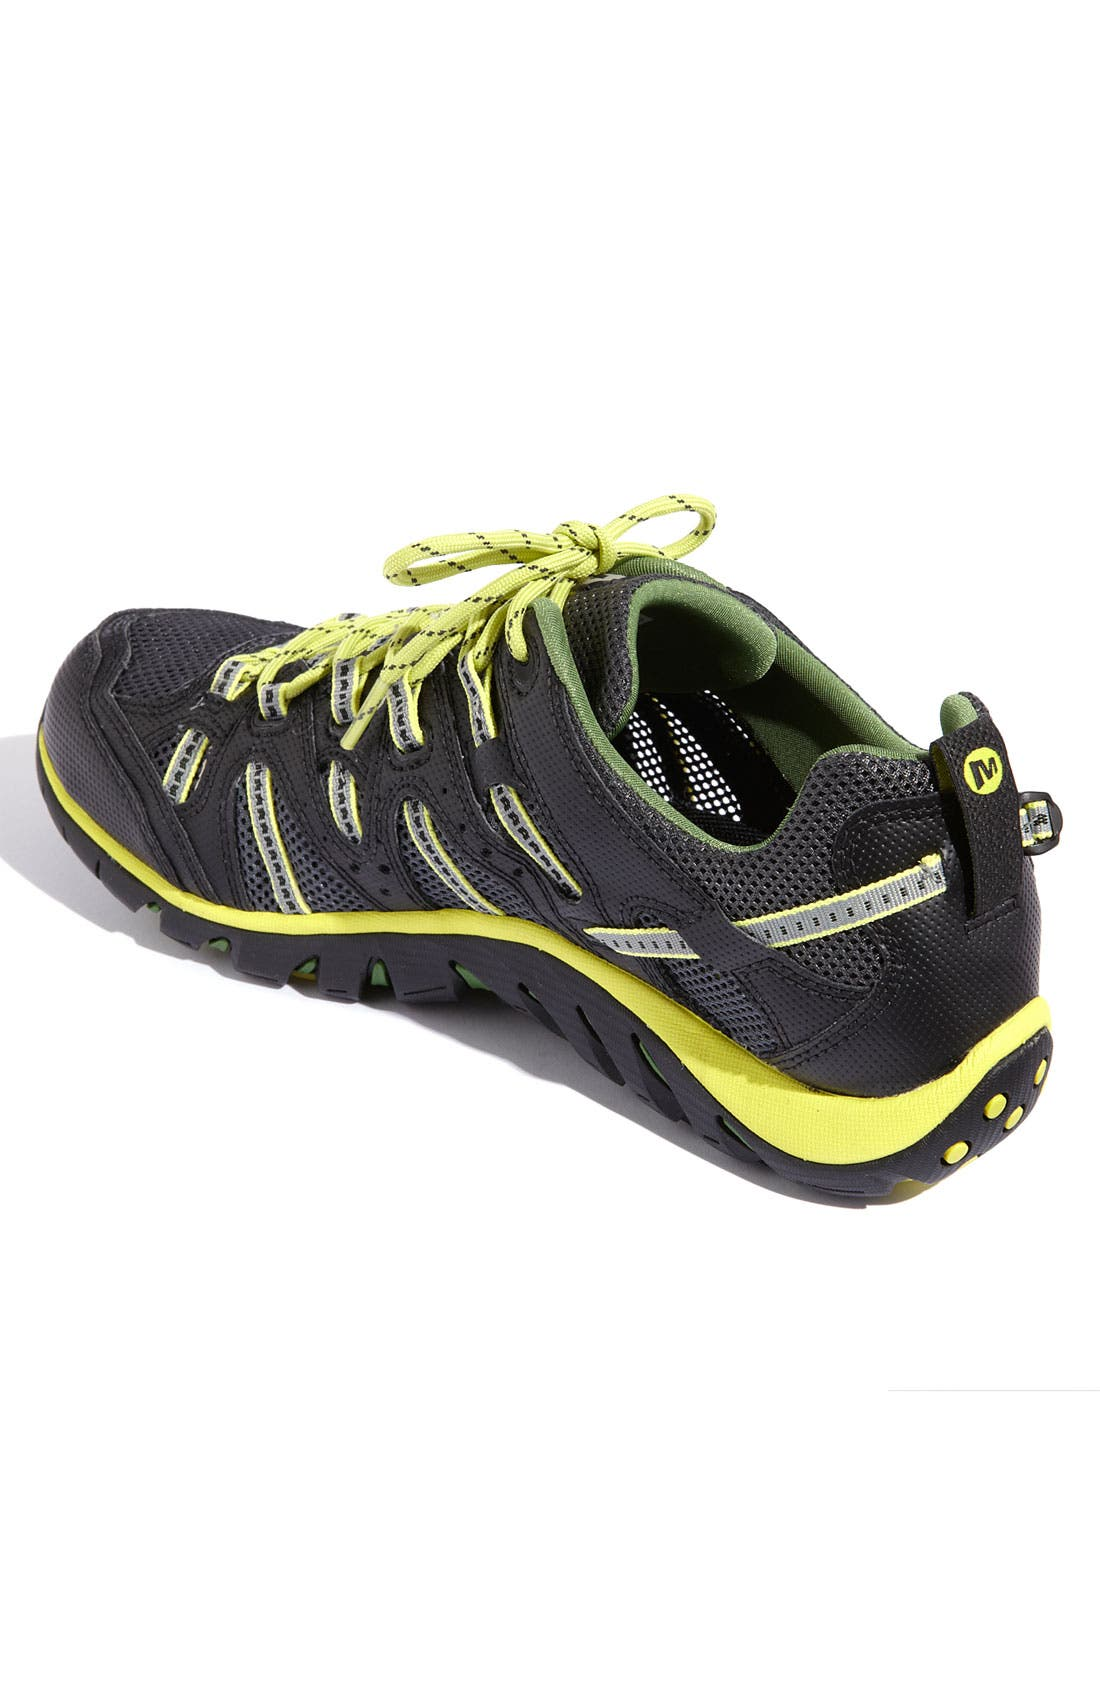 Alternate Image 2  - Merrell 'Waterpro Manistee' Trail Shoe (Men)